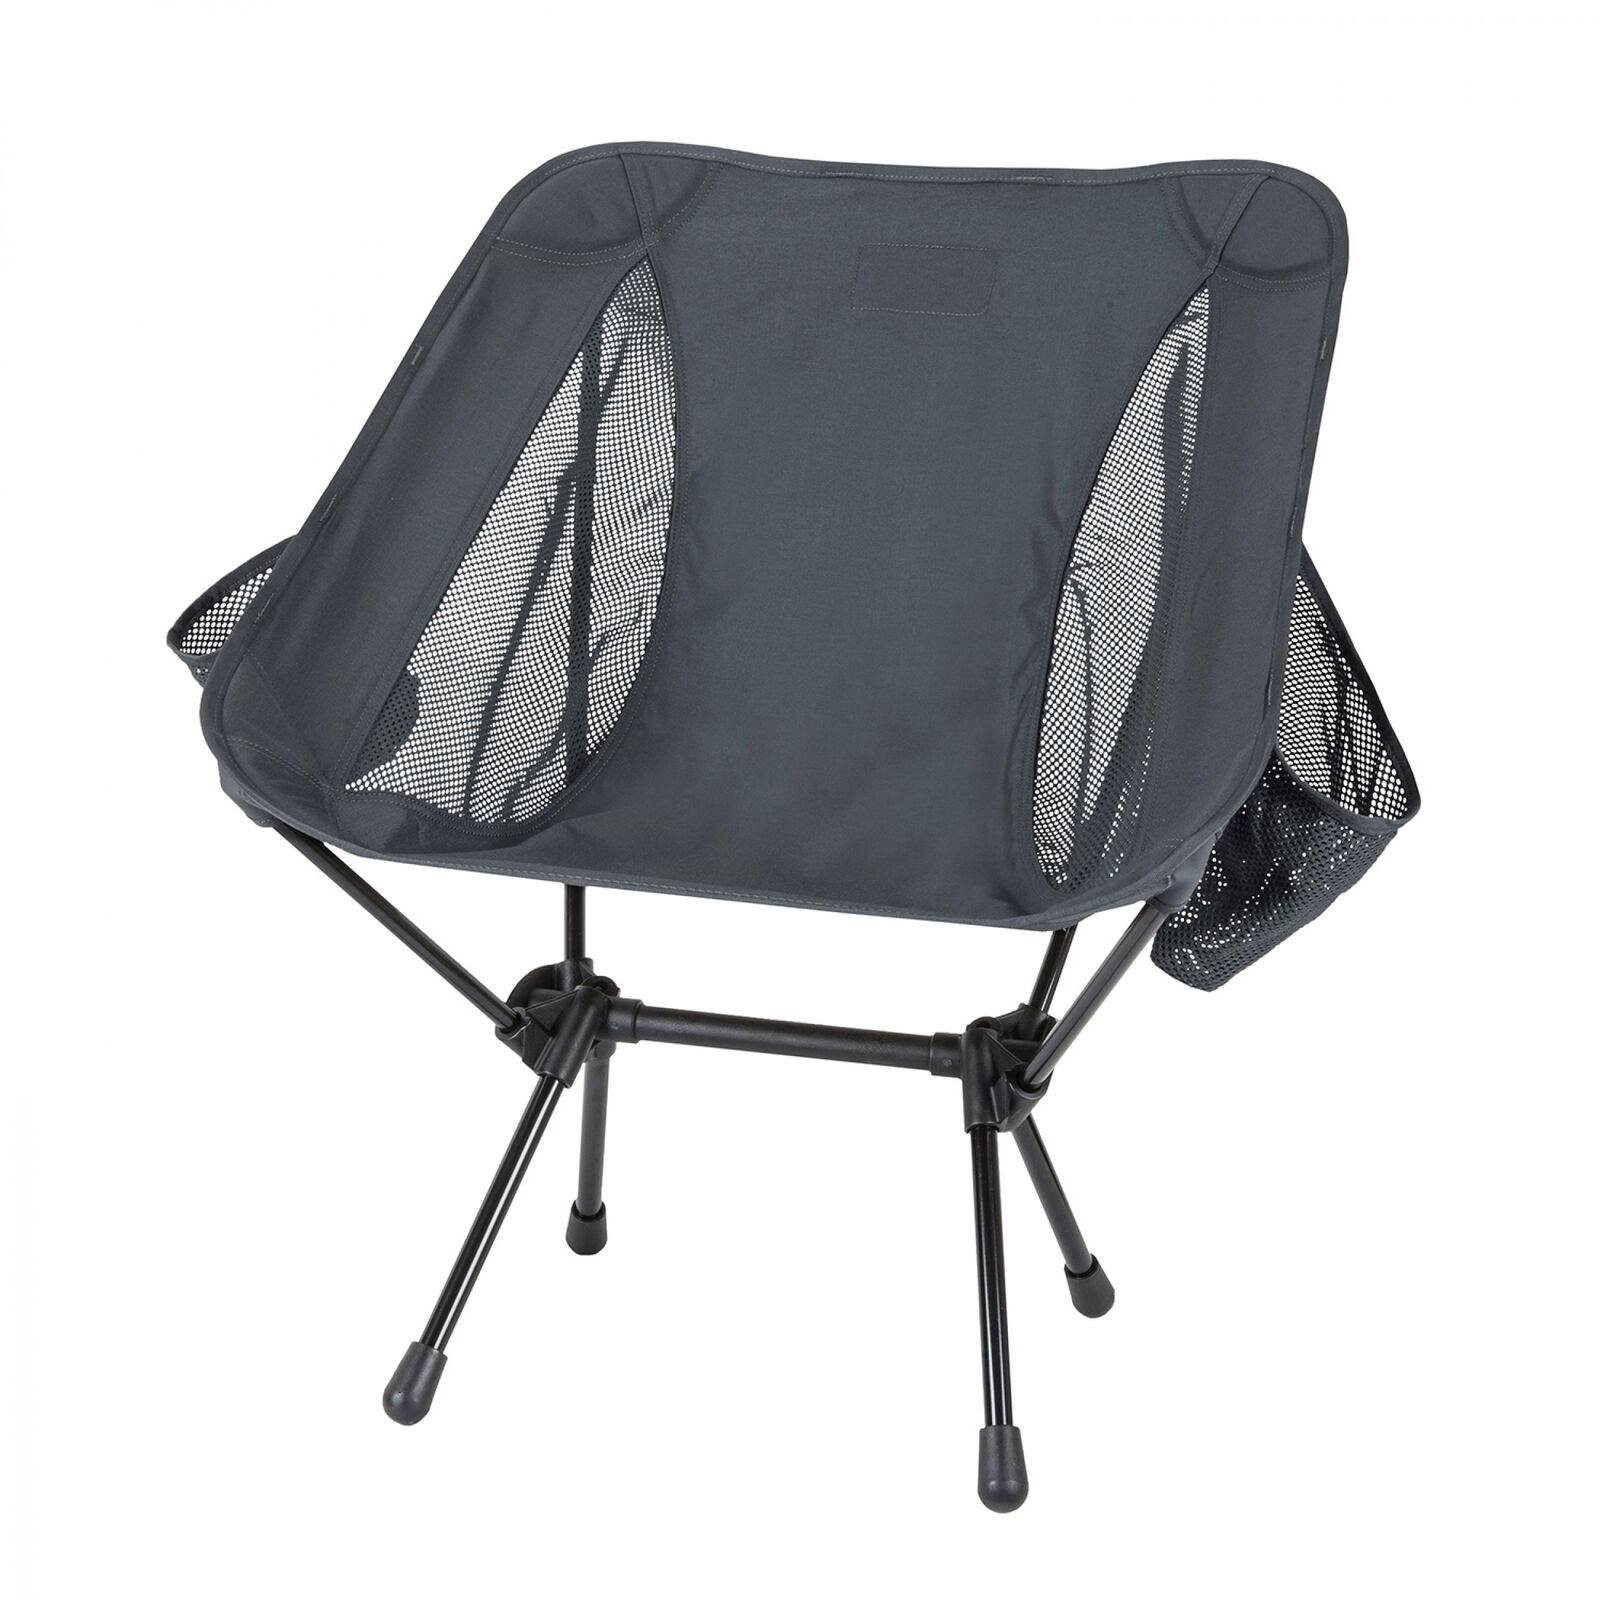 Helikon-Tex Range Chair Campingstuhl Outdoor Airsoft Angeln Jagd Jagd Jagd - Shadow grau 49d55c